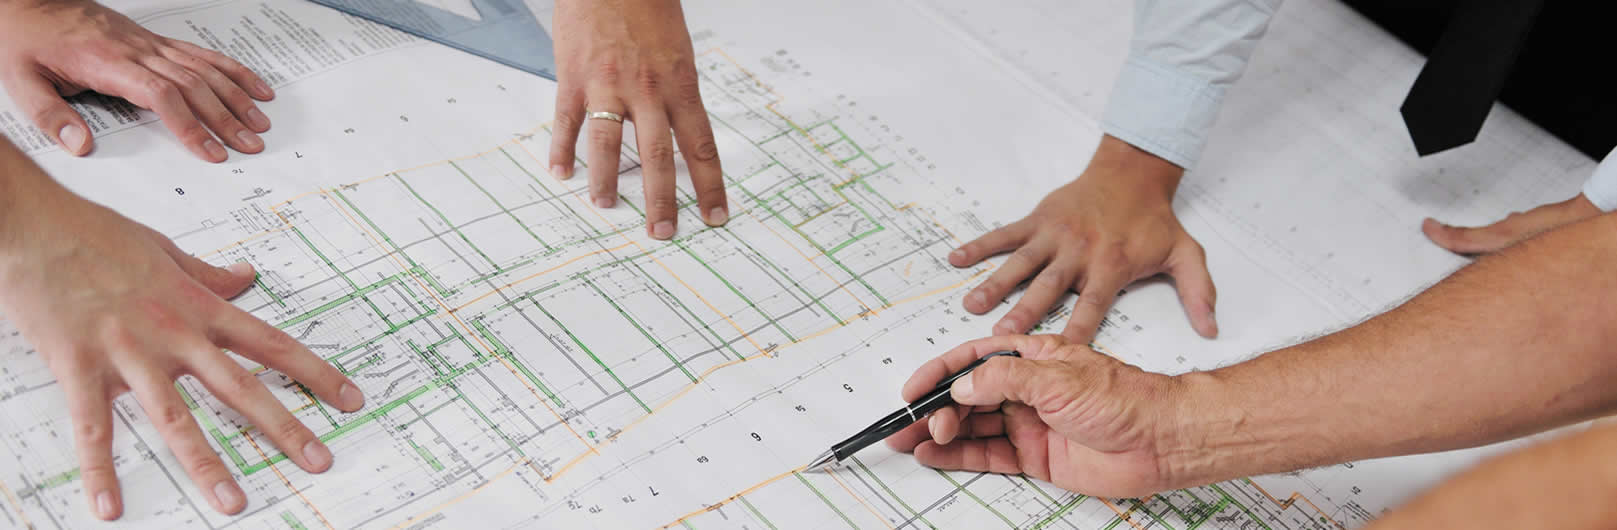 Consulting Engineers with pencils looking over a drawing